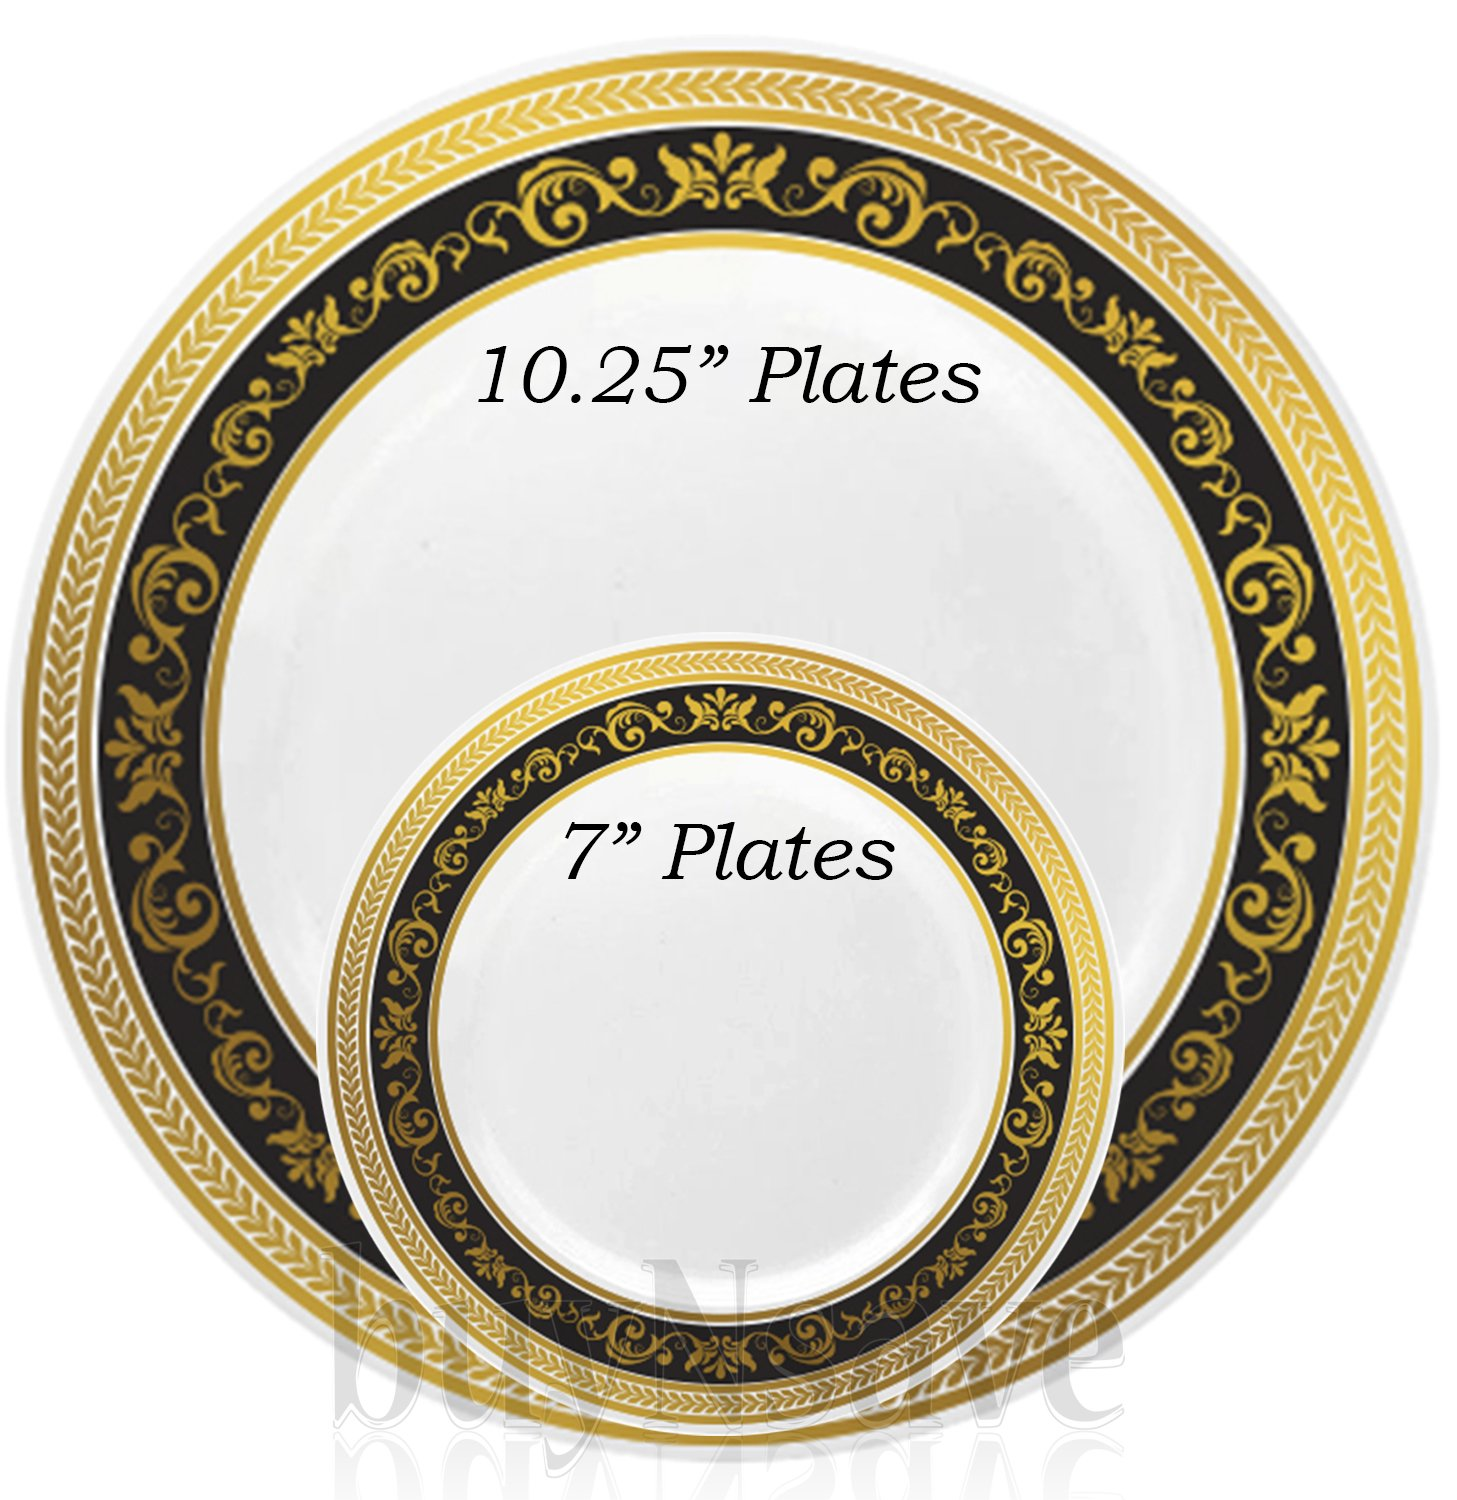 Amazon.com buyNsave Black With Gold Heavyweight Plastic Elegant Disposable Plates Wedding Party Elegant Dinnerware Royal Collection (35 ...  sc 1 st  Amazon.com & Amazon.com: buyNsave Black With Gold Heavyweight Plastic Elegant ...